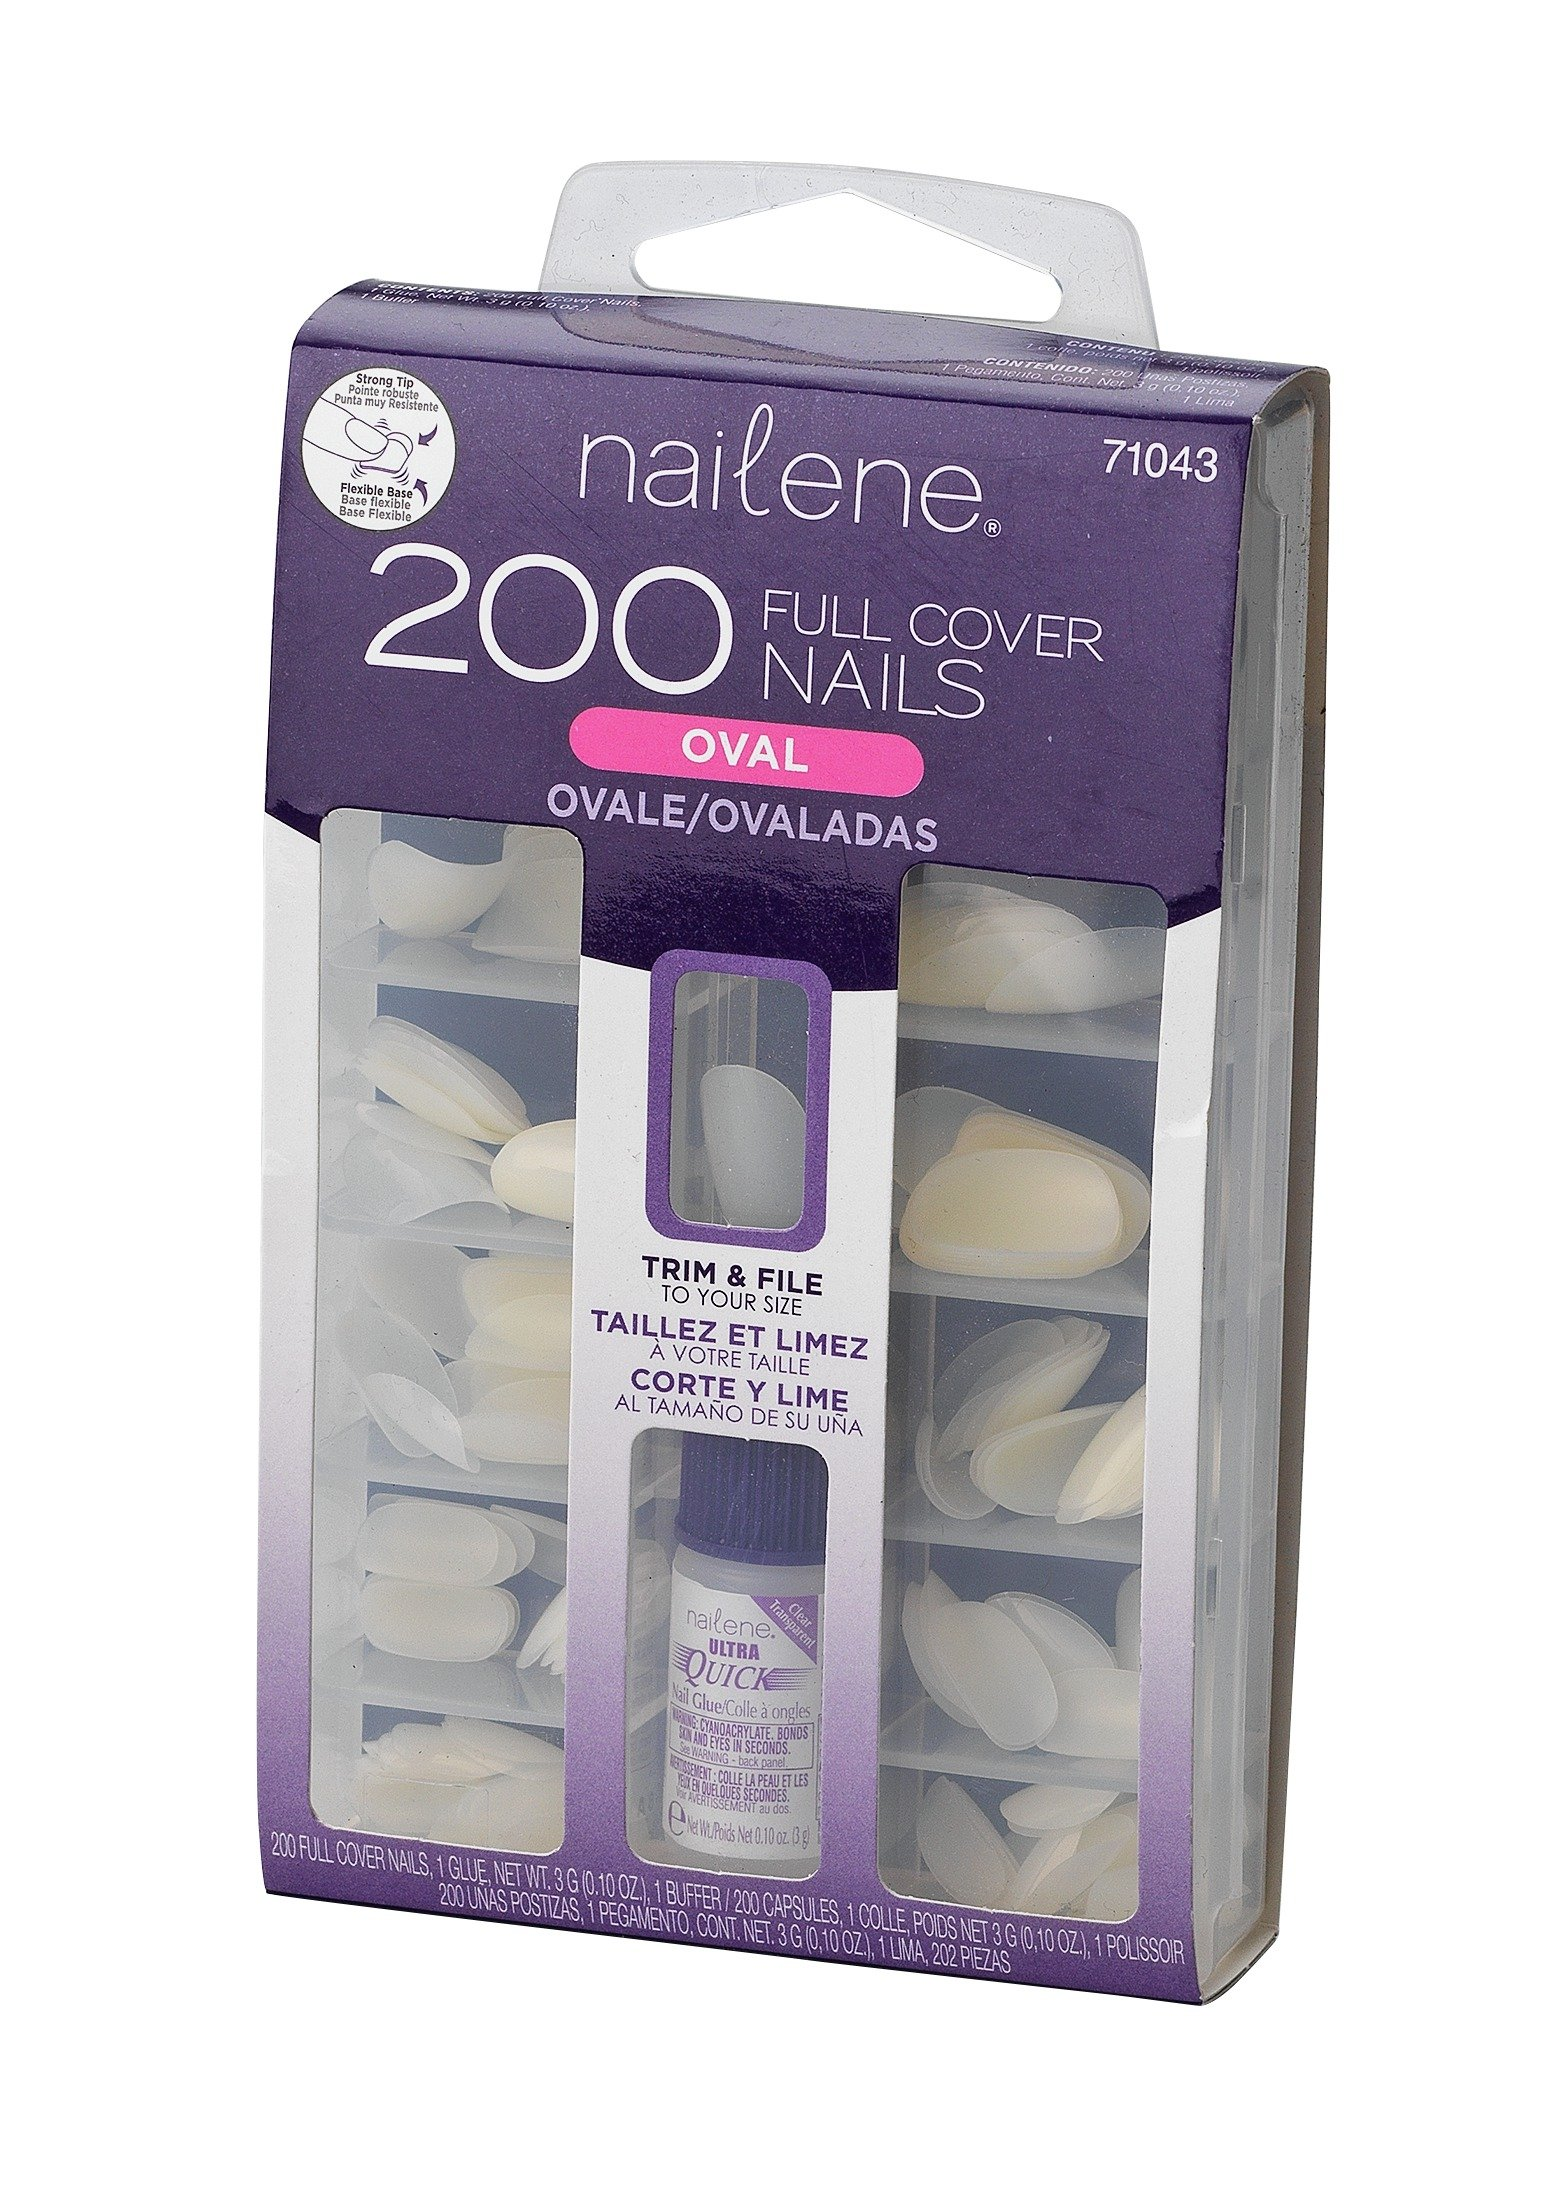 Nailene Pack of 200 Oval Nails